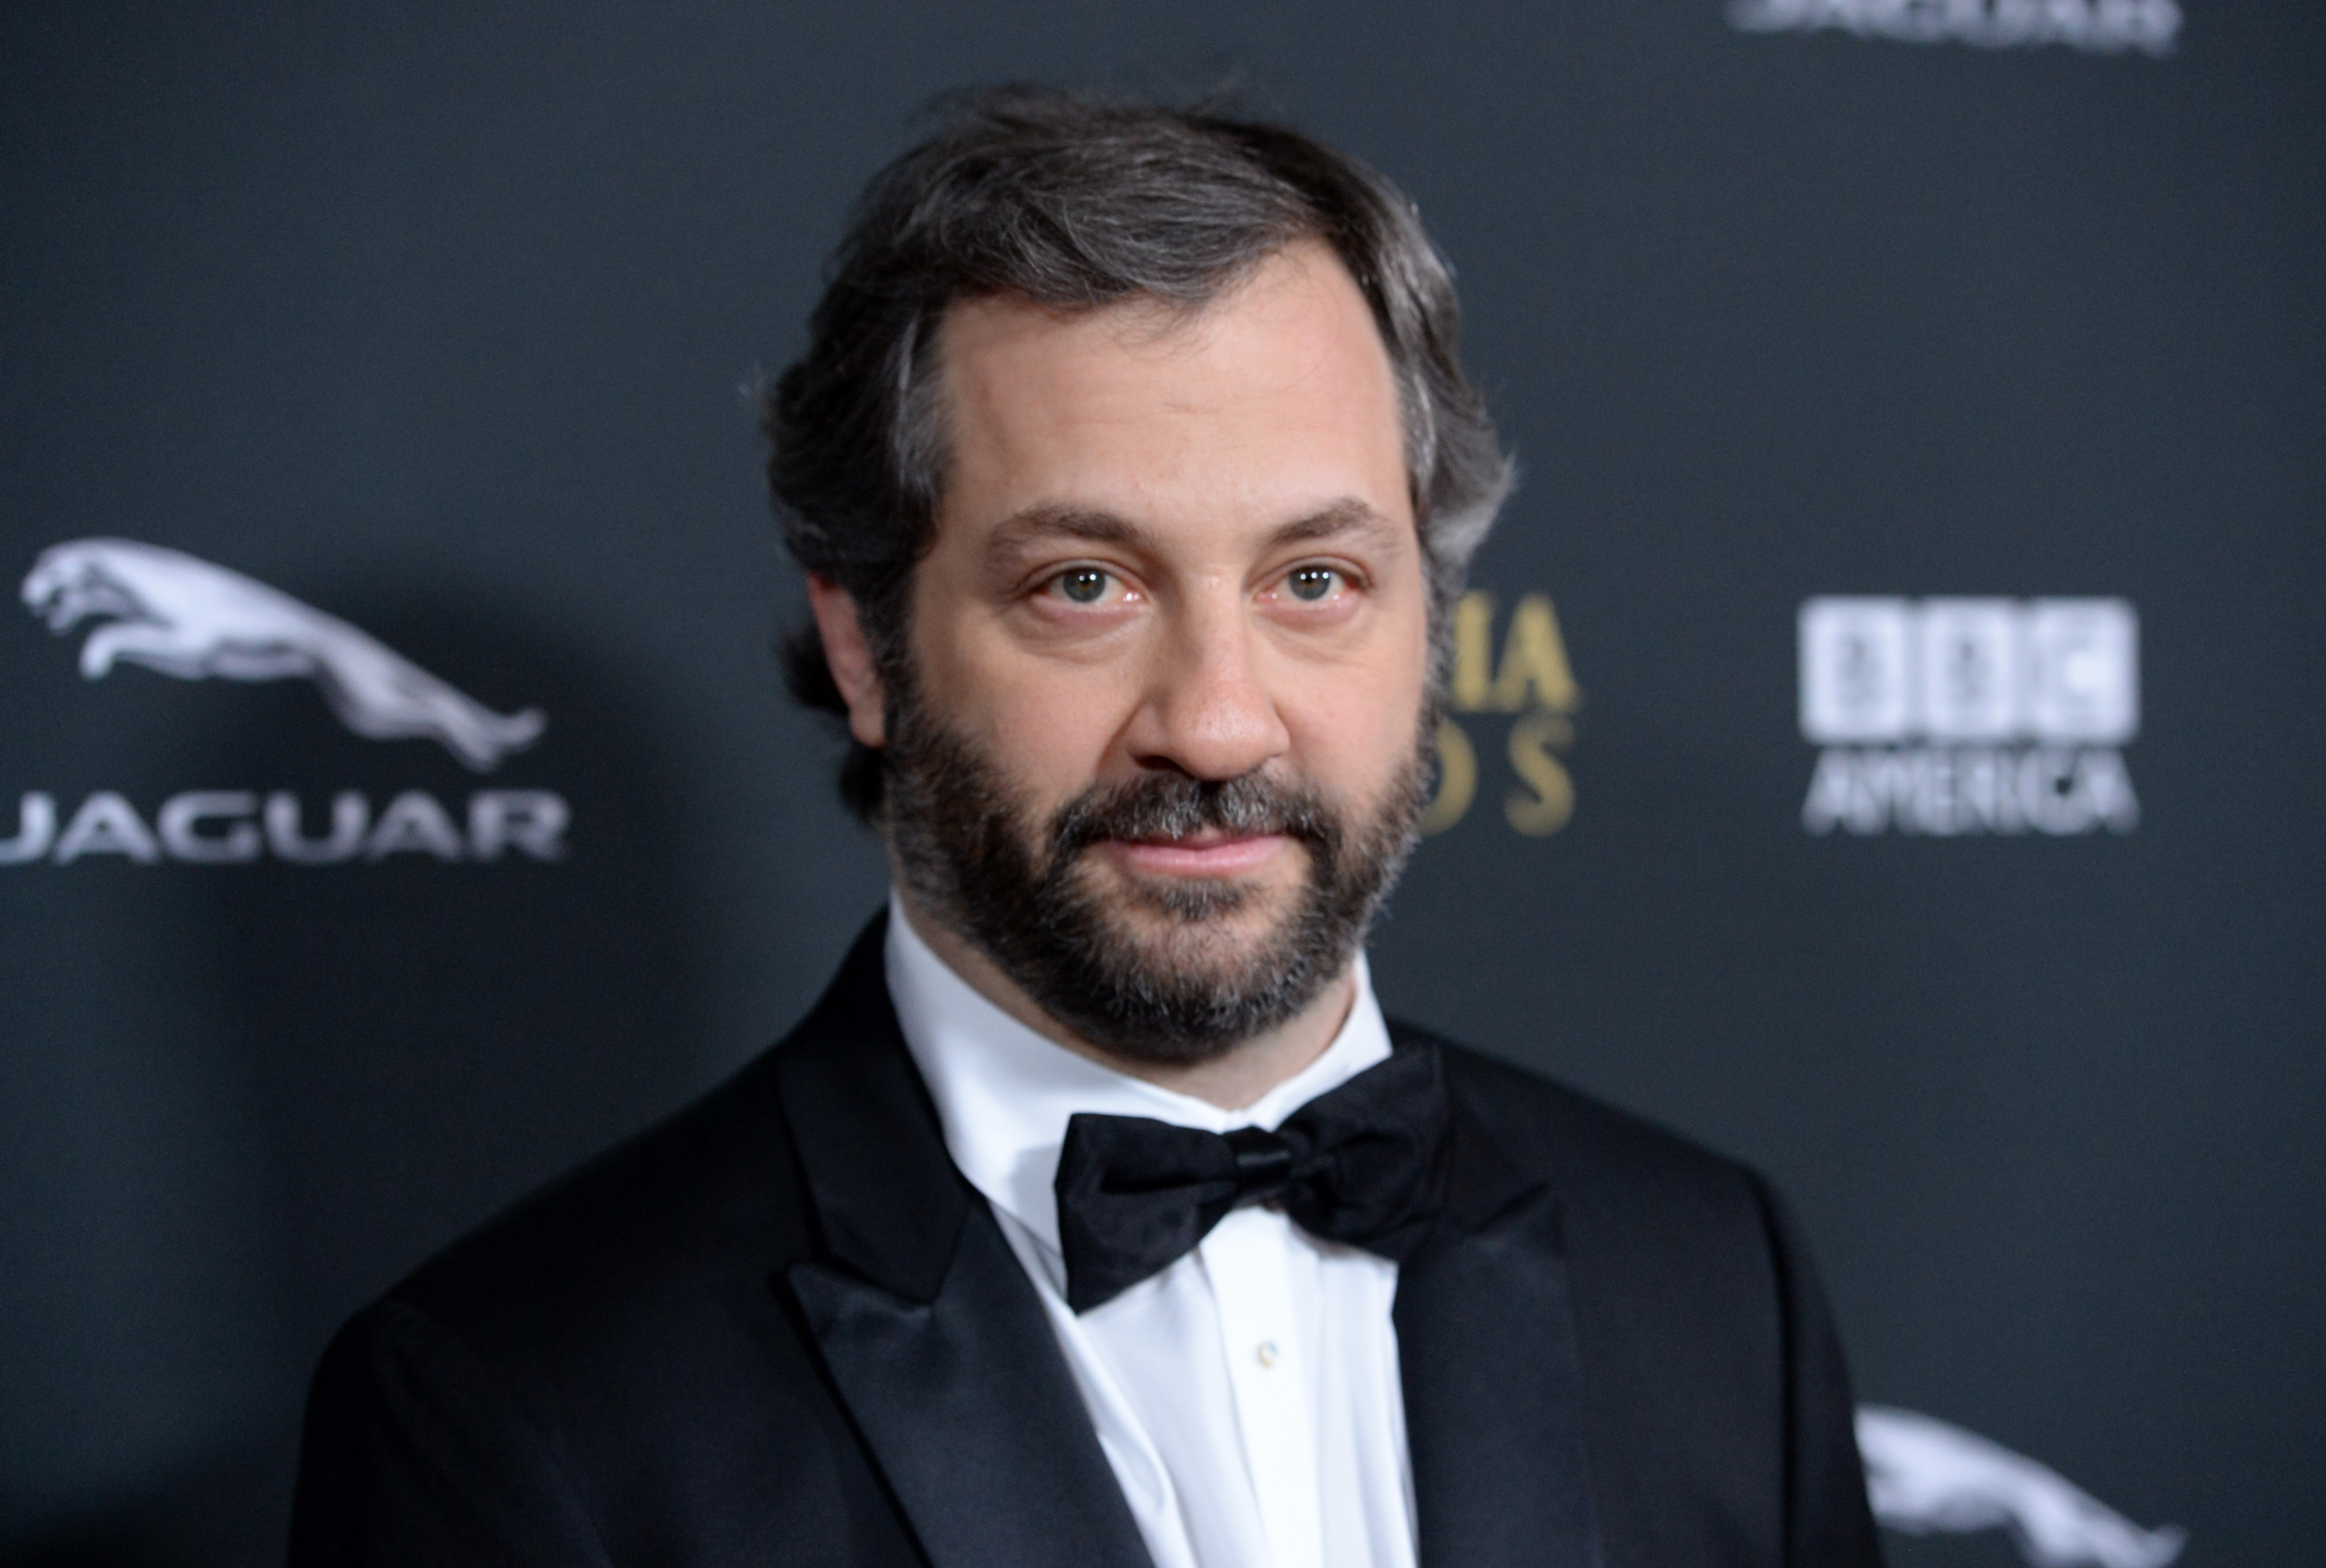 Judd Apatow says Ghostbusters haters probably support Donald Trump